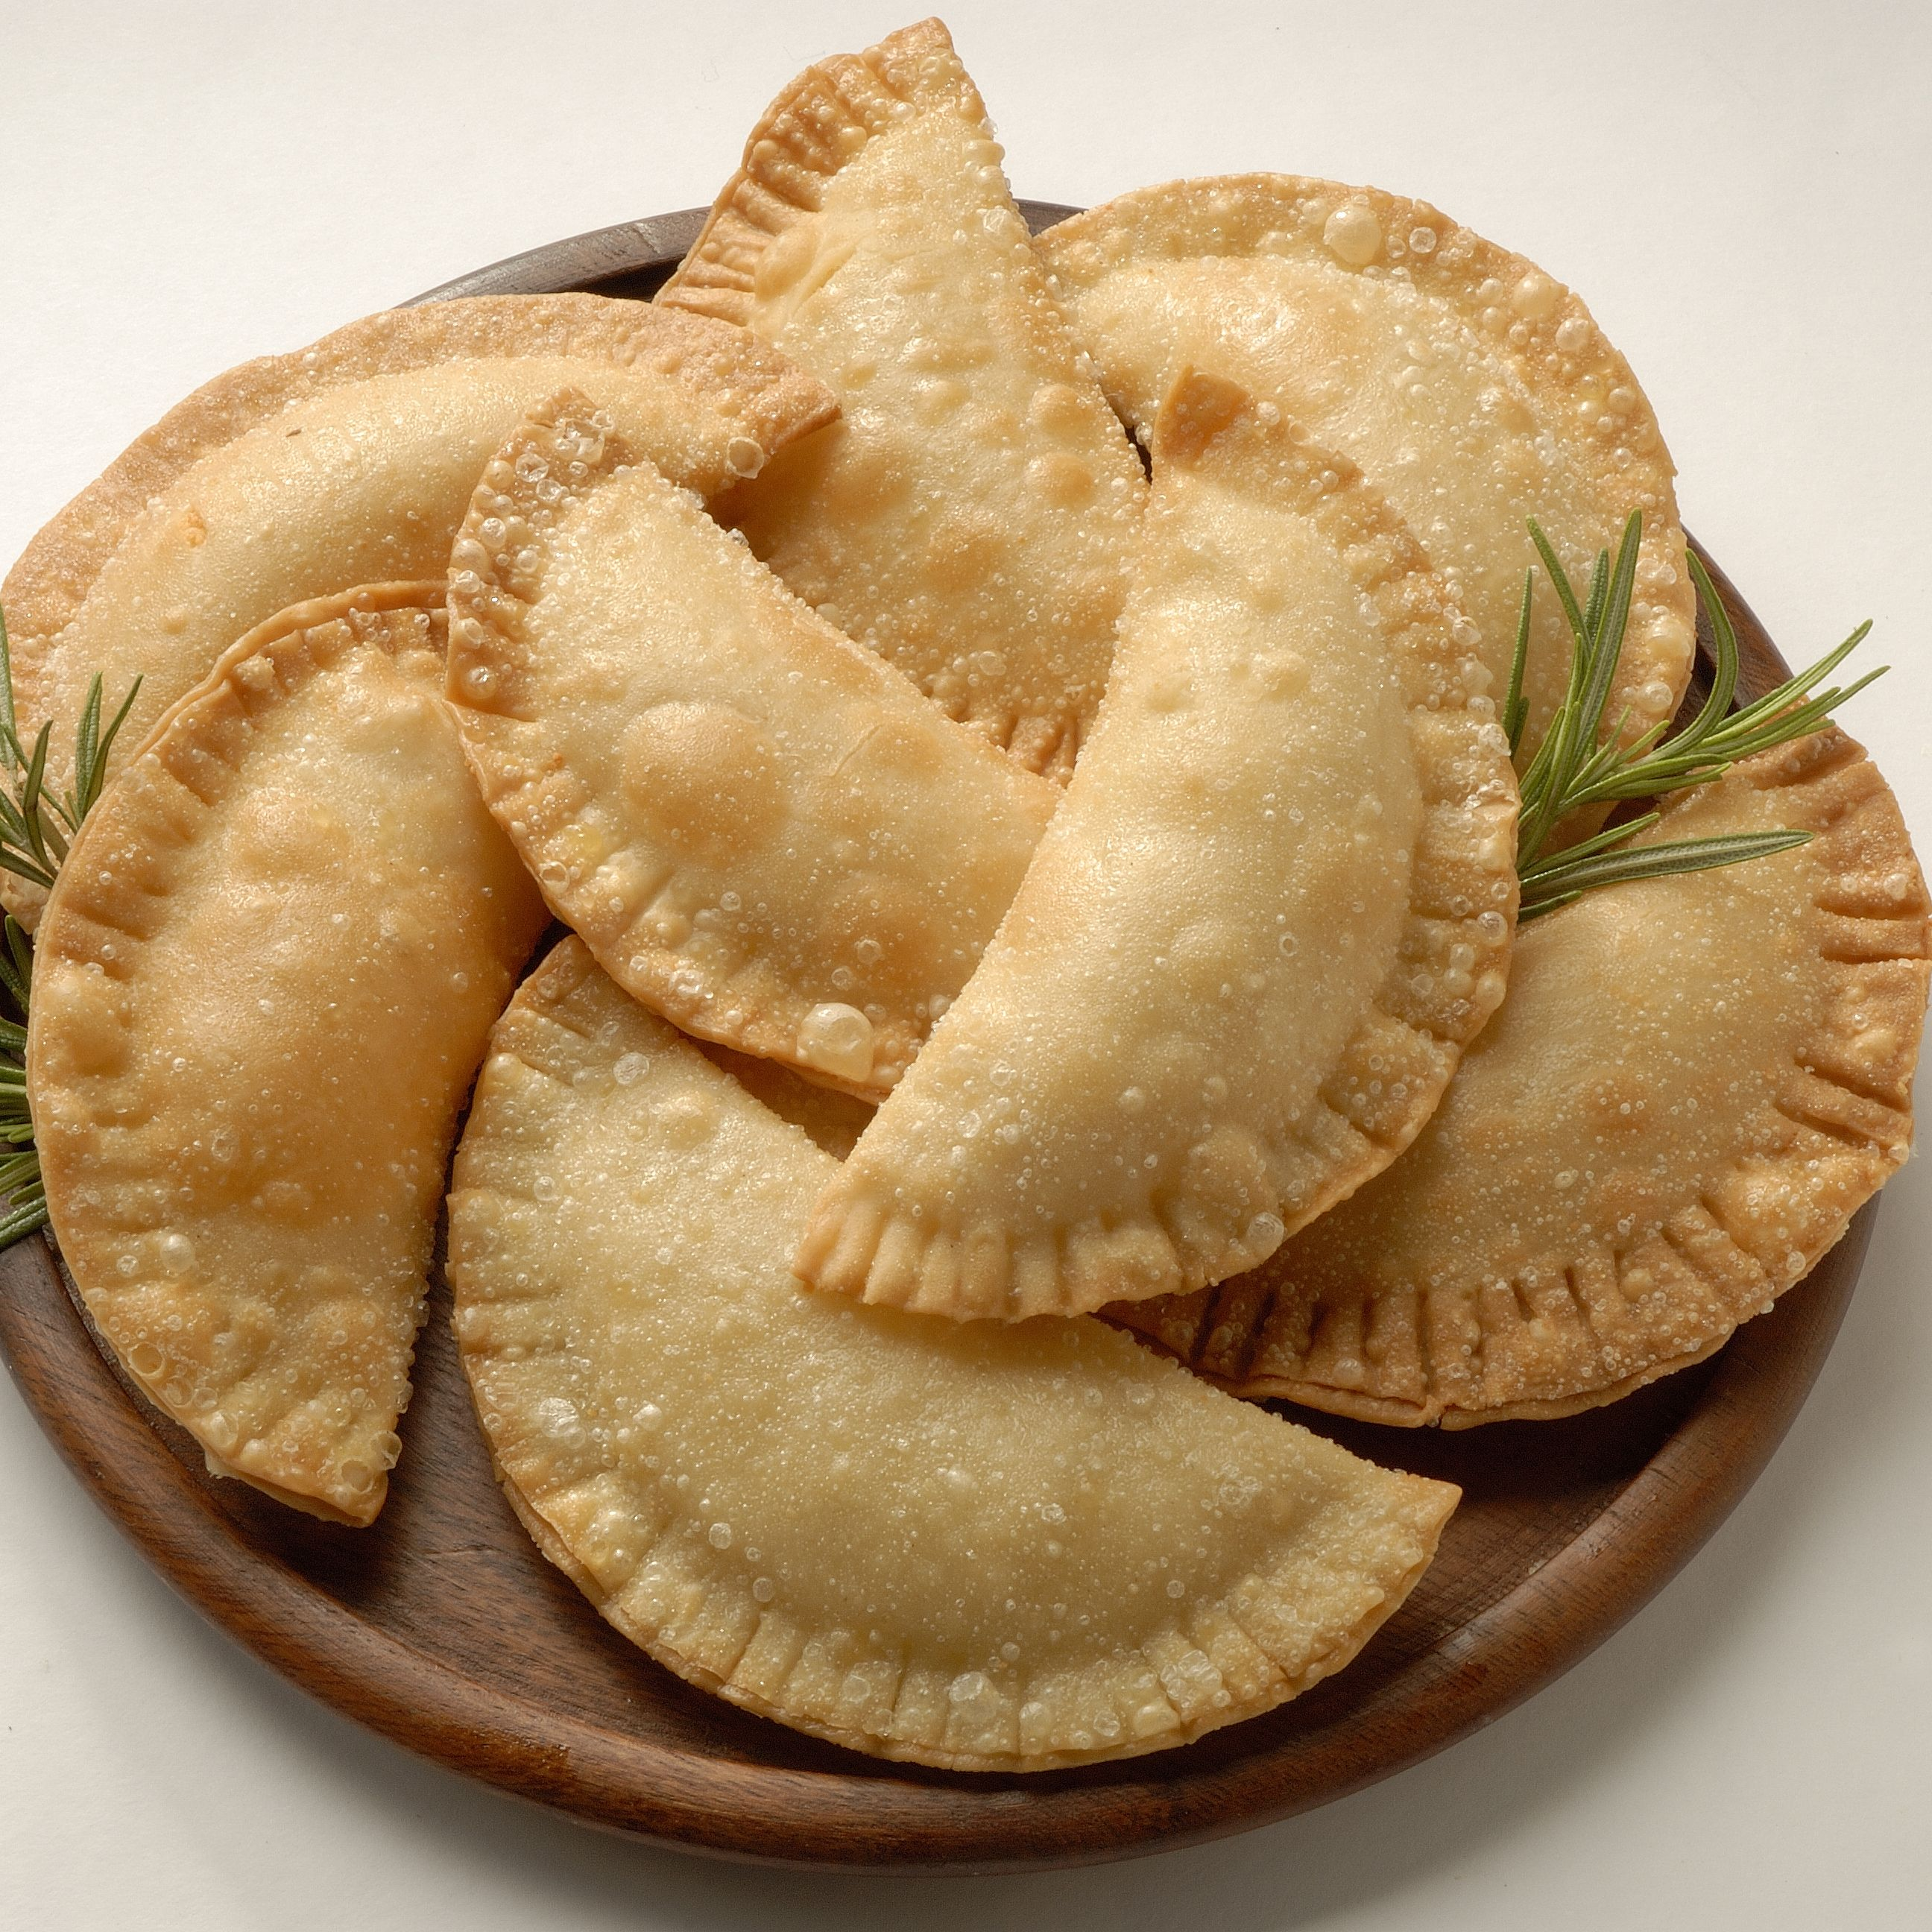 <p>8 oz. package of cream cheese spread<br />8 oz. package of guava paste<br />10 prepared empanada dough discs<br />Oil for frying<br /><br /></p>